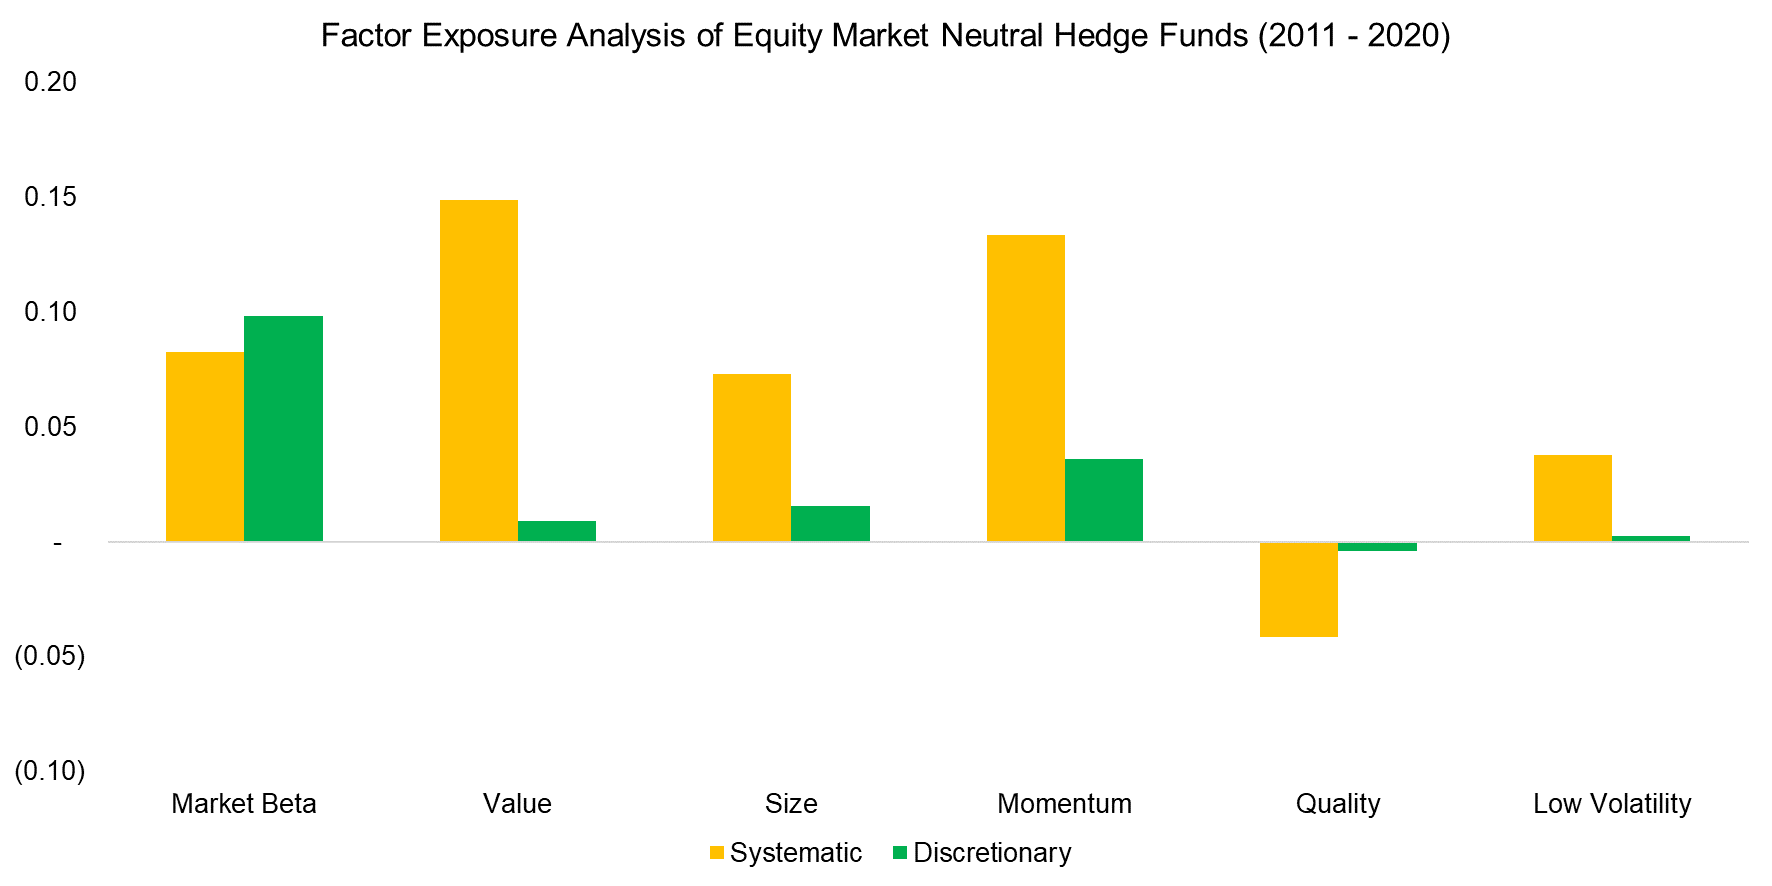 Factor Exposure Analysis of Equity Market Neutral Hedge Funds (2011 - 2020)